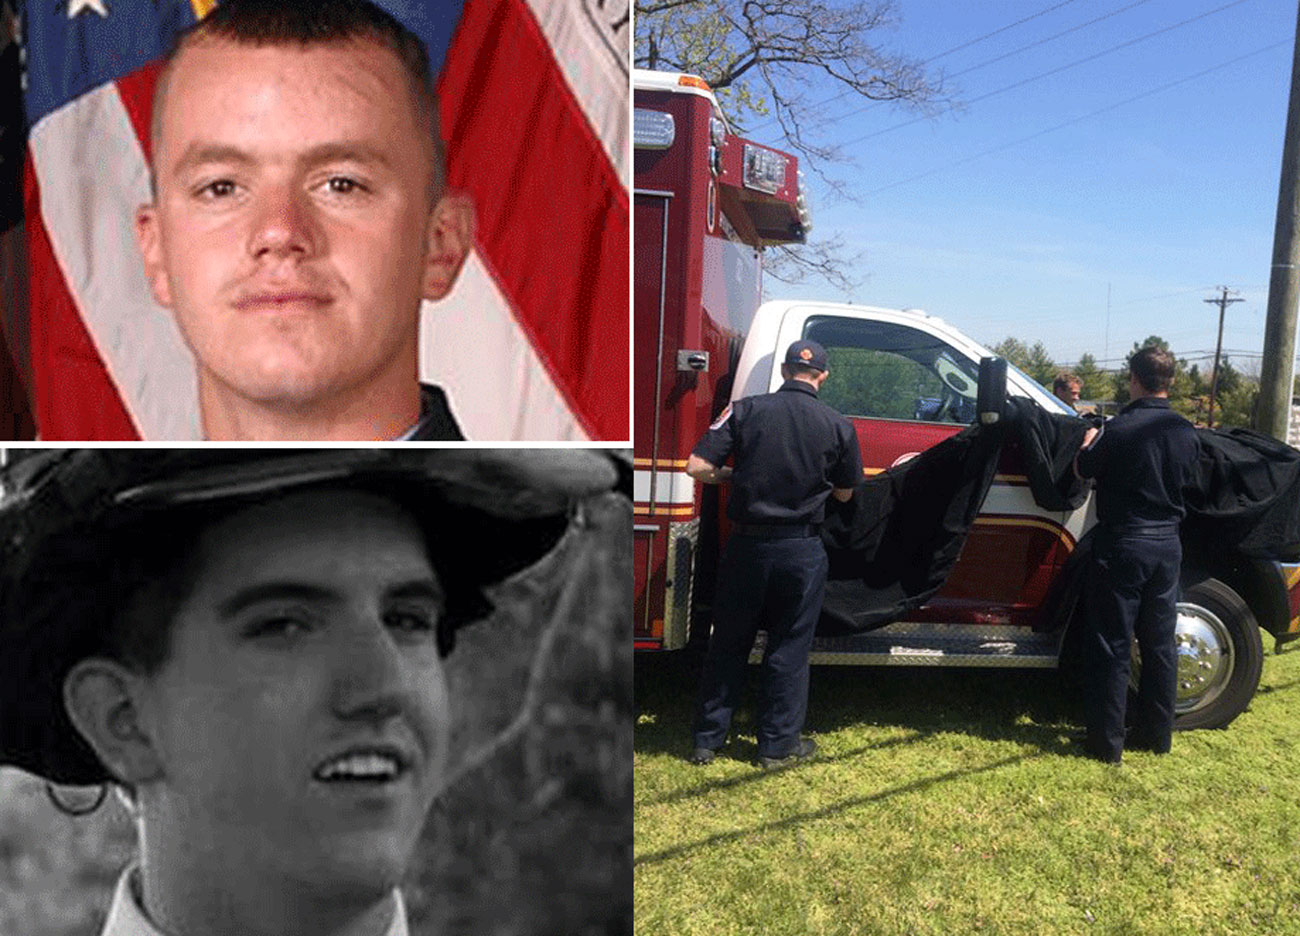 Exclusive: Deadly shooting of Md. firefighter on call sheds light on similar incident